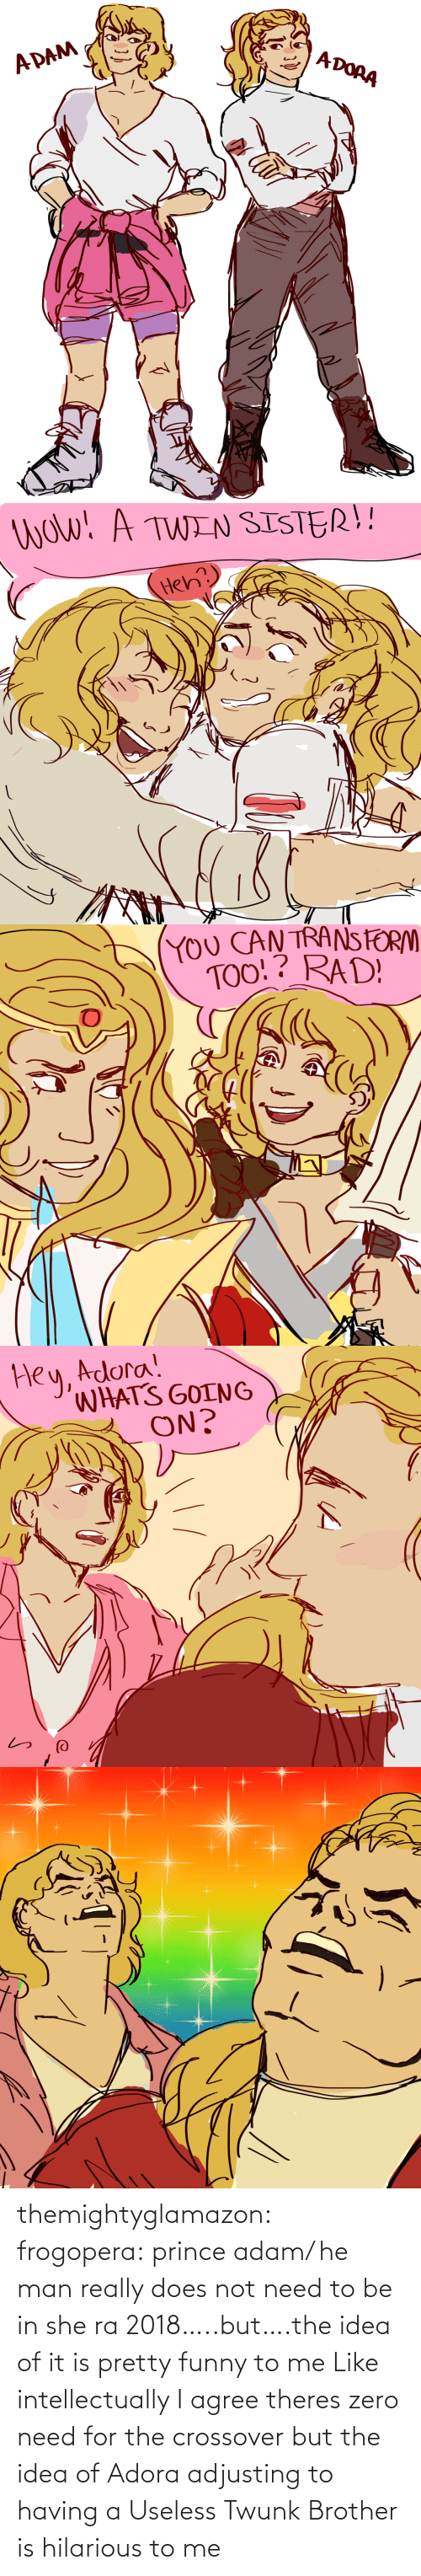 brother: themightyglamazon: frogopera: prince adam/ he man really does not need to be in she ra 2018…..but….the idea of it is pretty funny to me   Like intellectually I agree theres zero need for the crossover but the idea of Adora adjusting to having a Useless Twunk Brother is hilarious to me